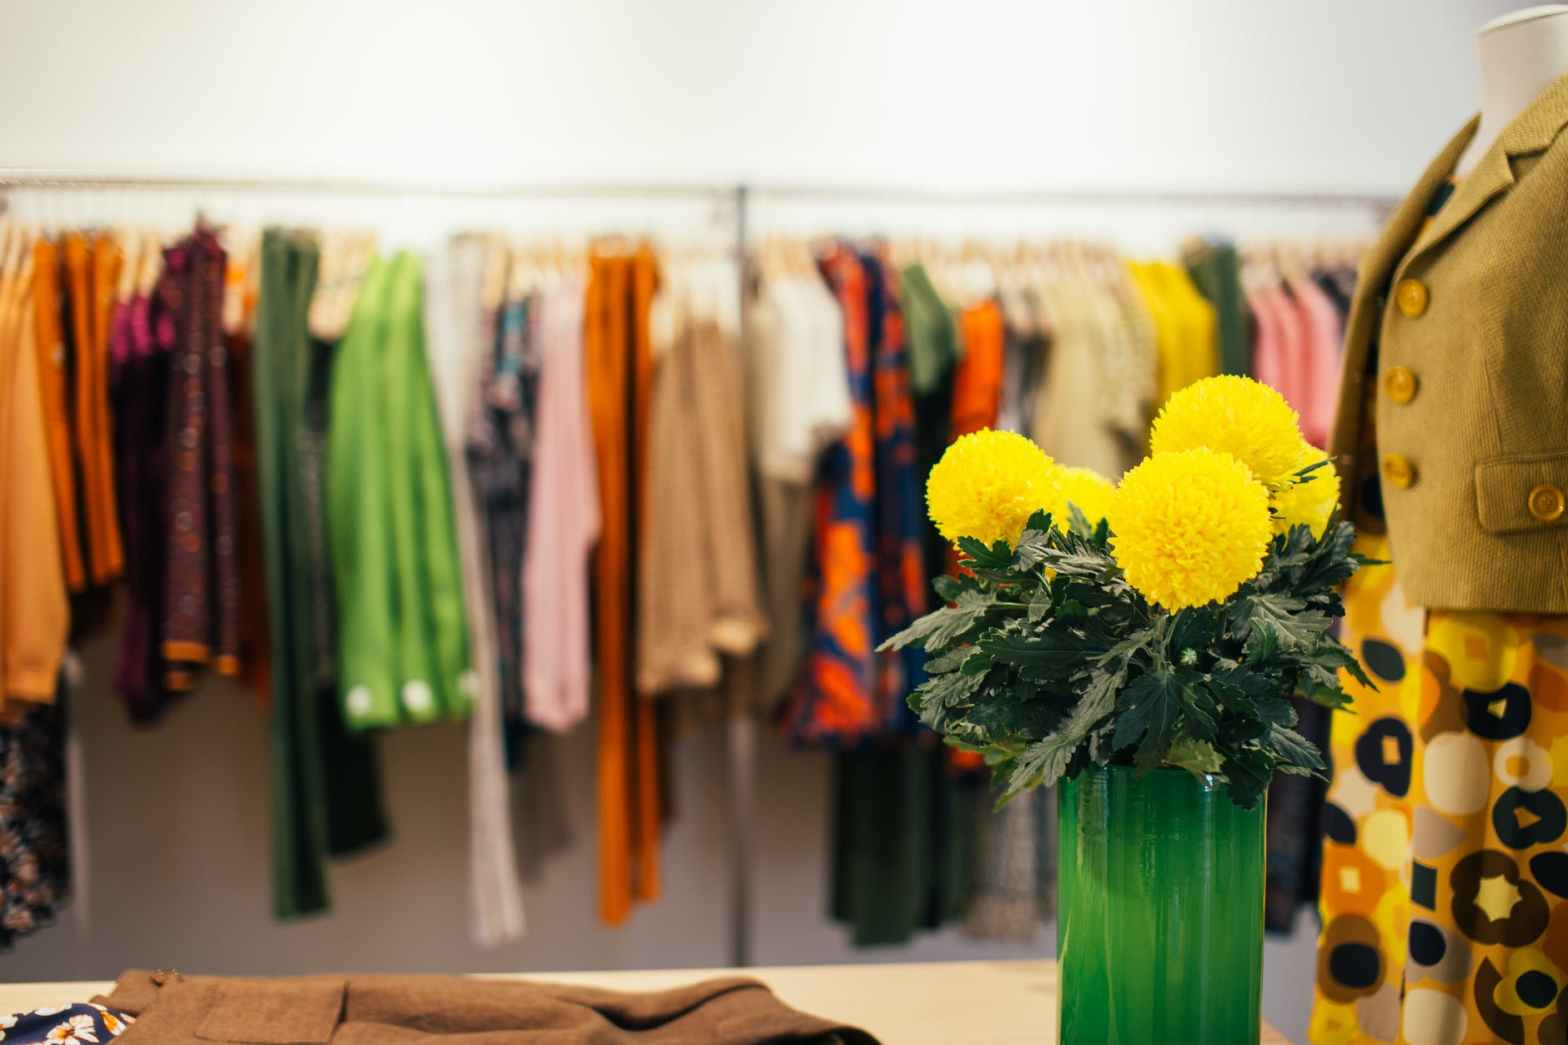 assorted colorful clothes hanging on rack in store